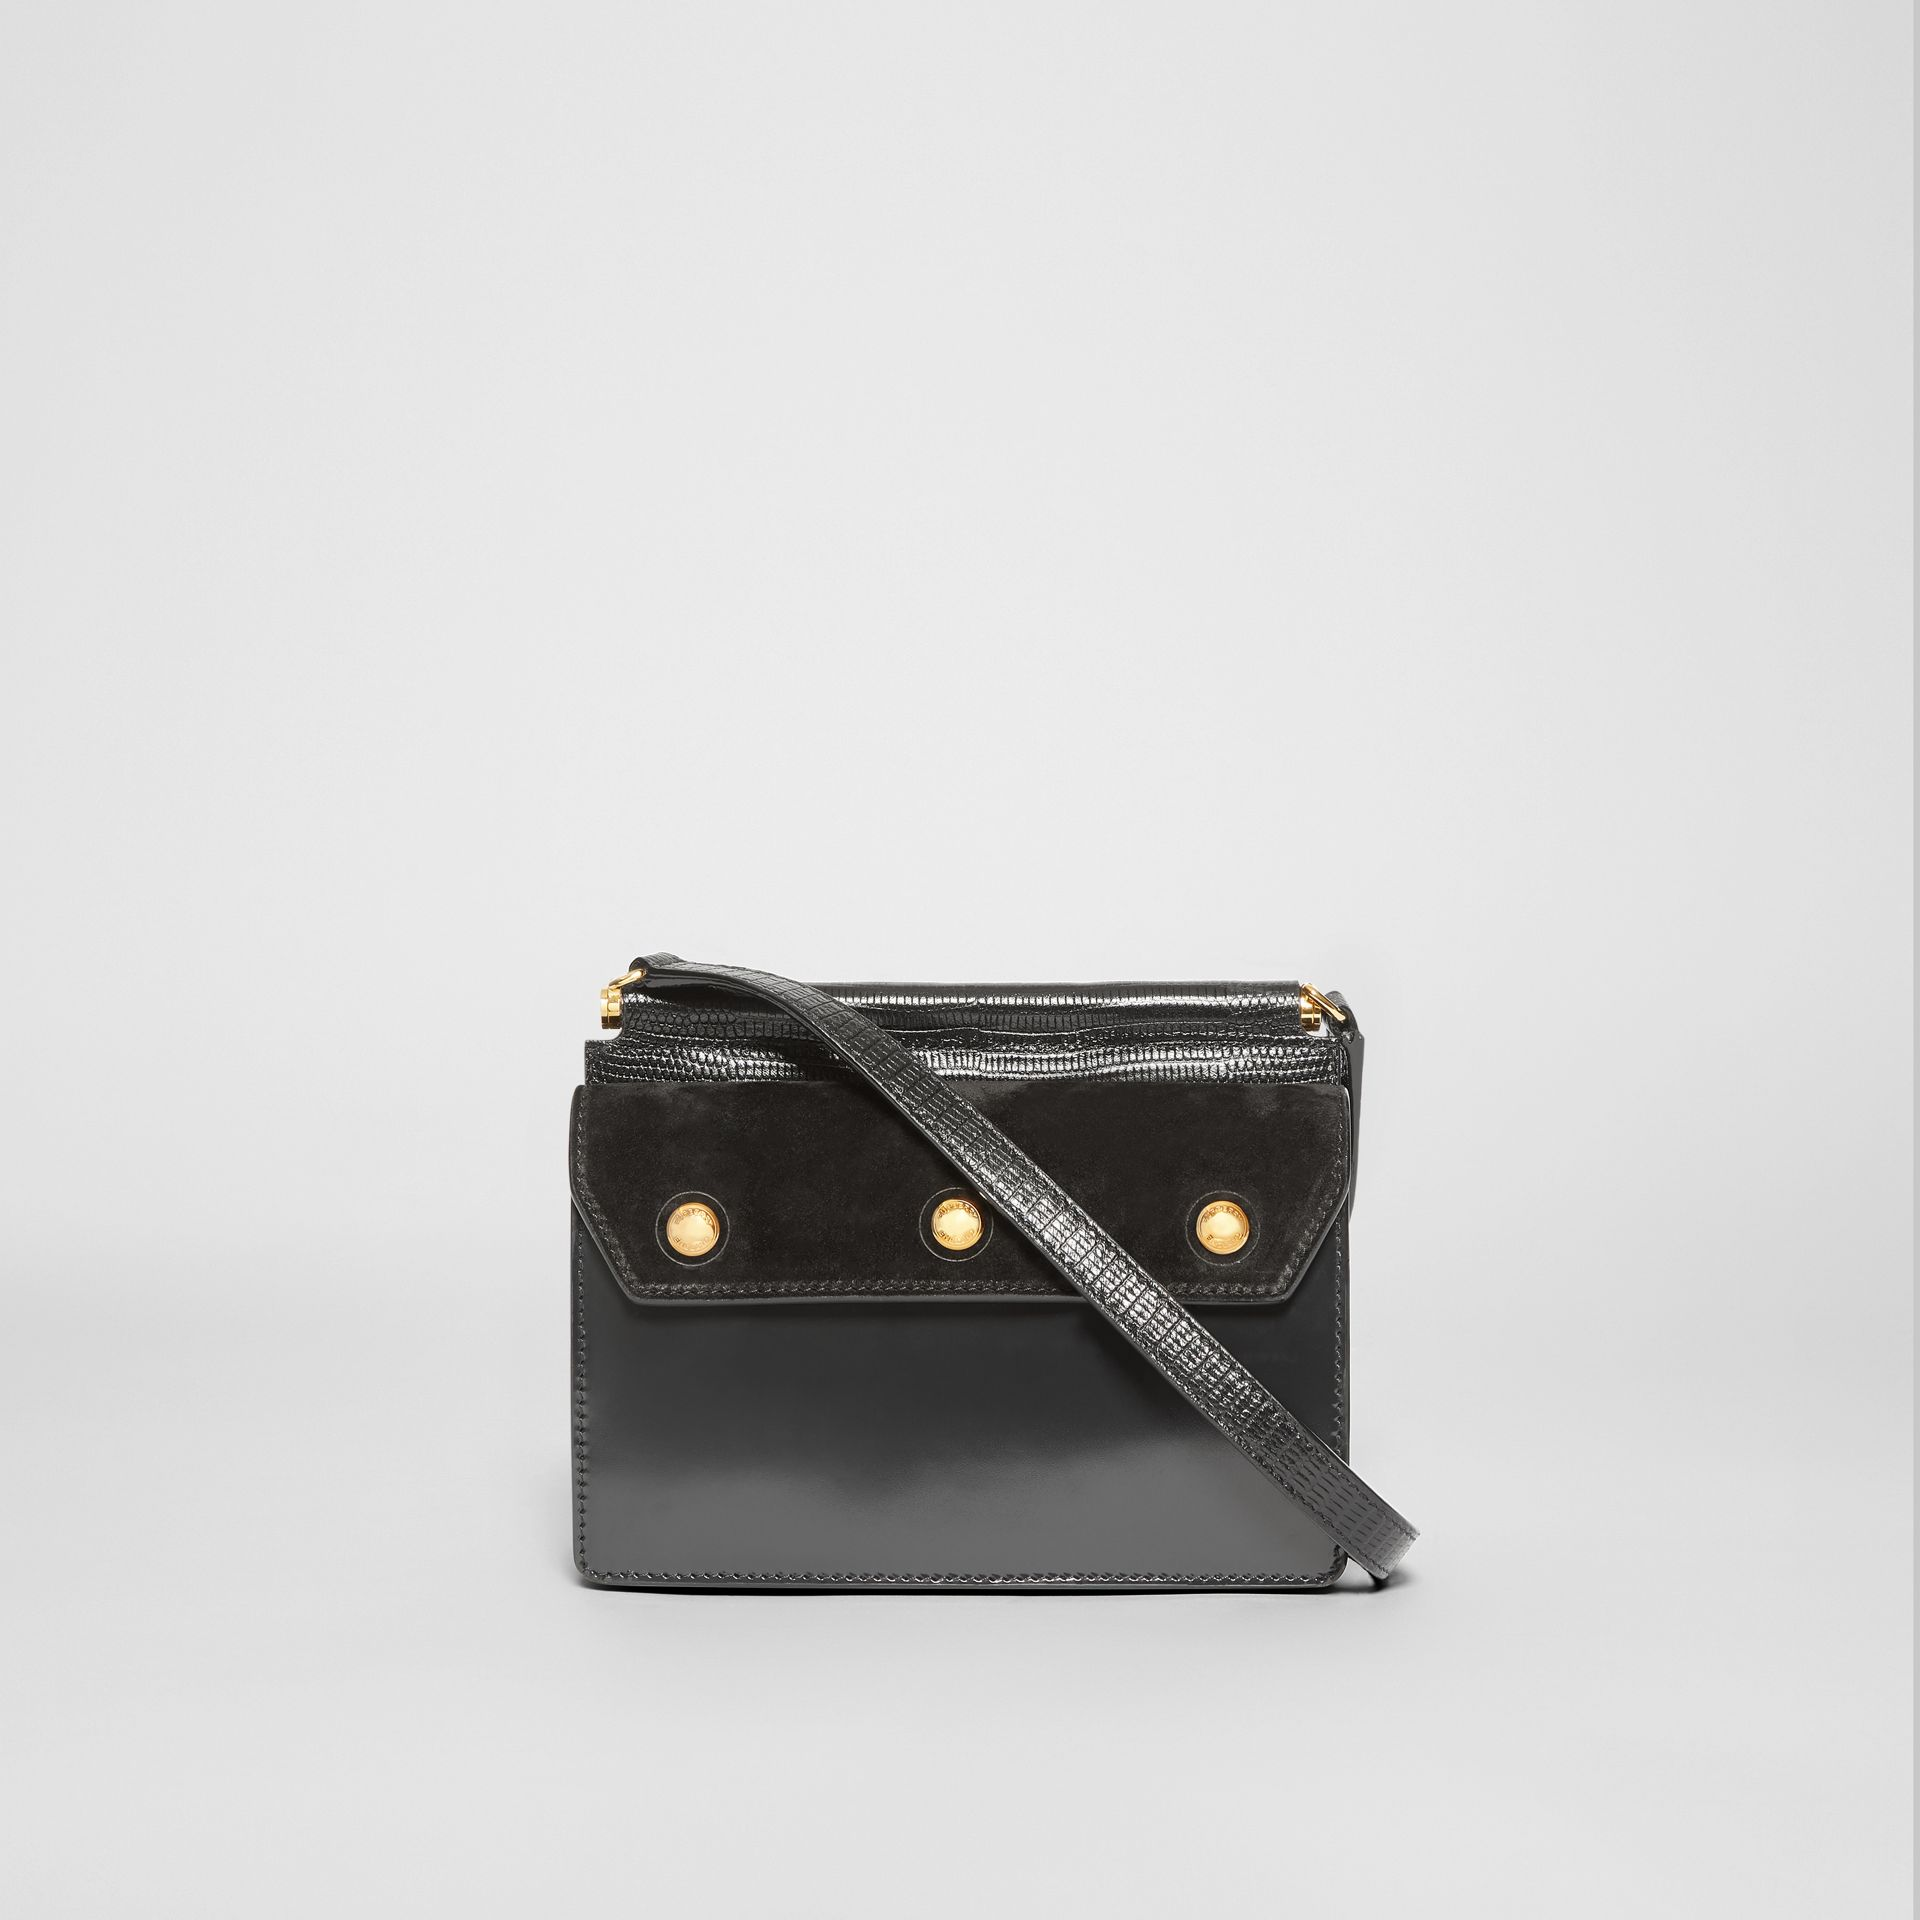 Mini Suede and Leather Title Bag with Pocket Detail in Black - Women | Burberry - gallery image 7